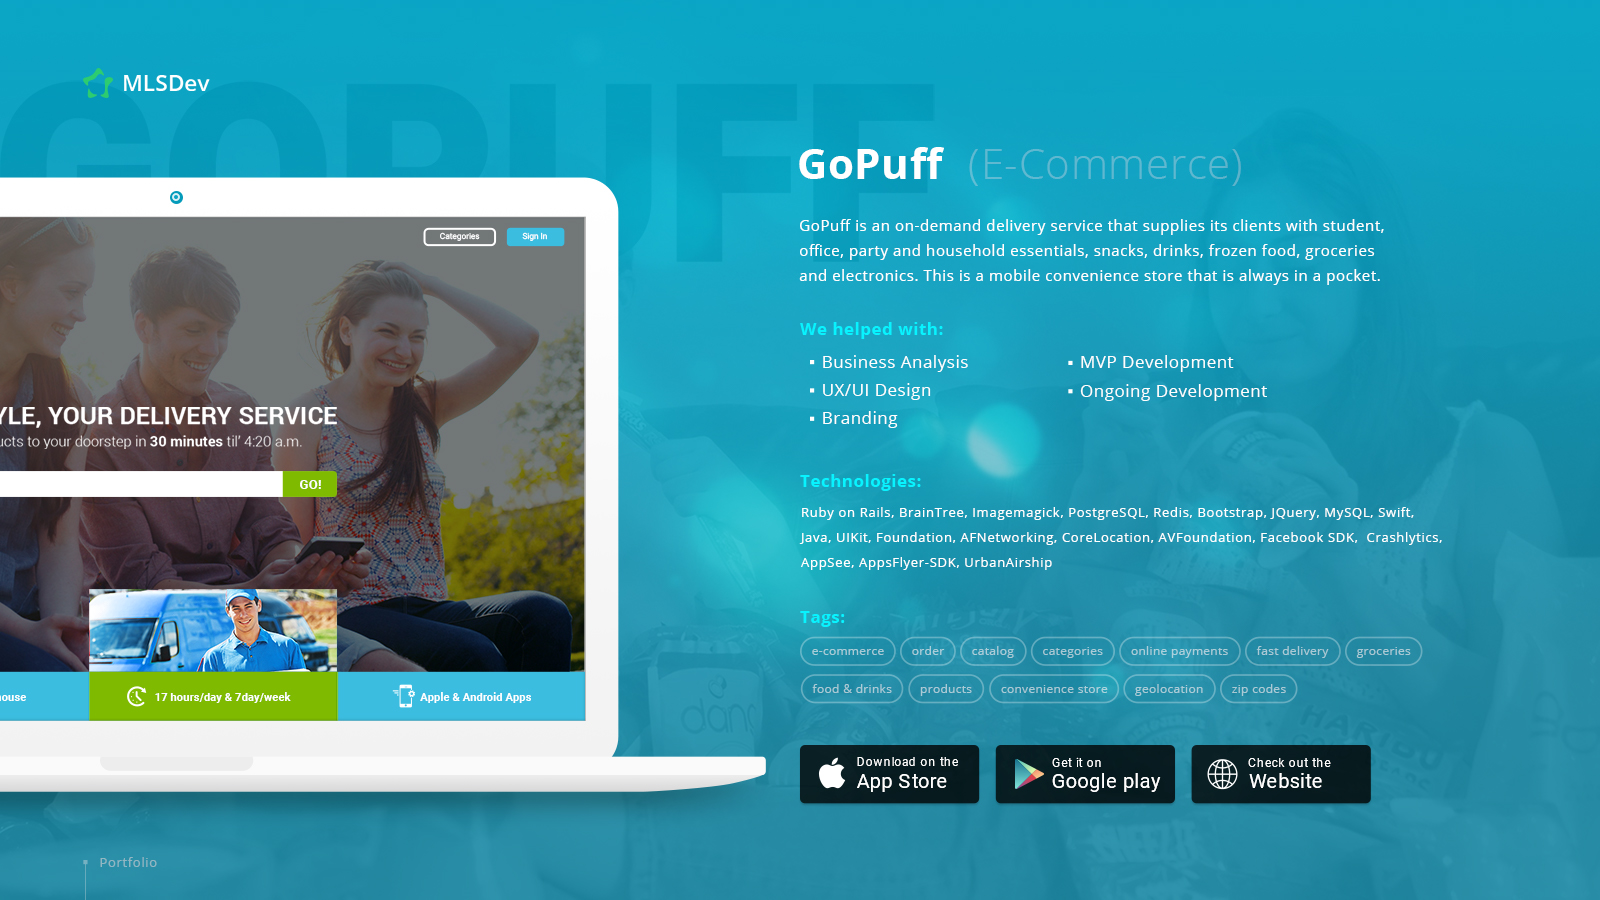 GoPuff: On-Demand Delivery Solution in the USA